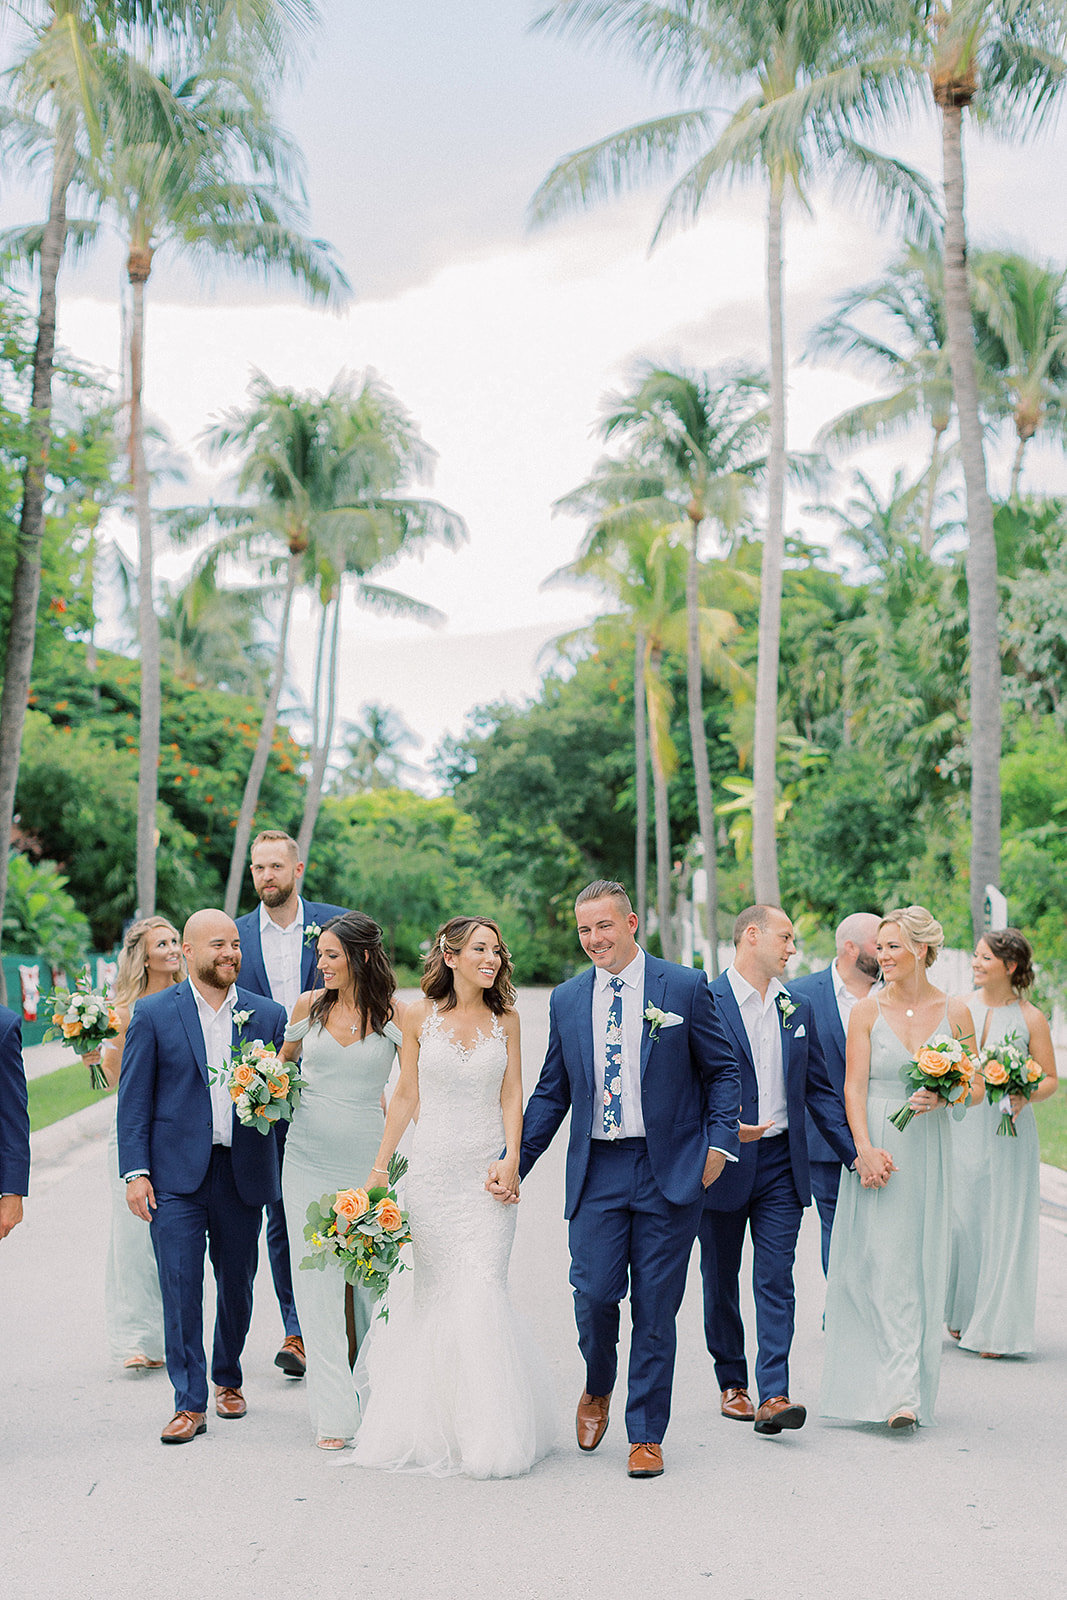 Aubry___Bill_Forsyth_Hyatt_Centric_Key_West_Wedding_Photographer_Casie_Marie_Photography-355